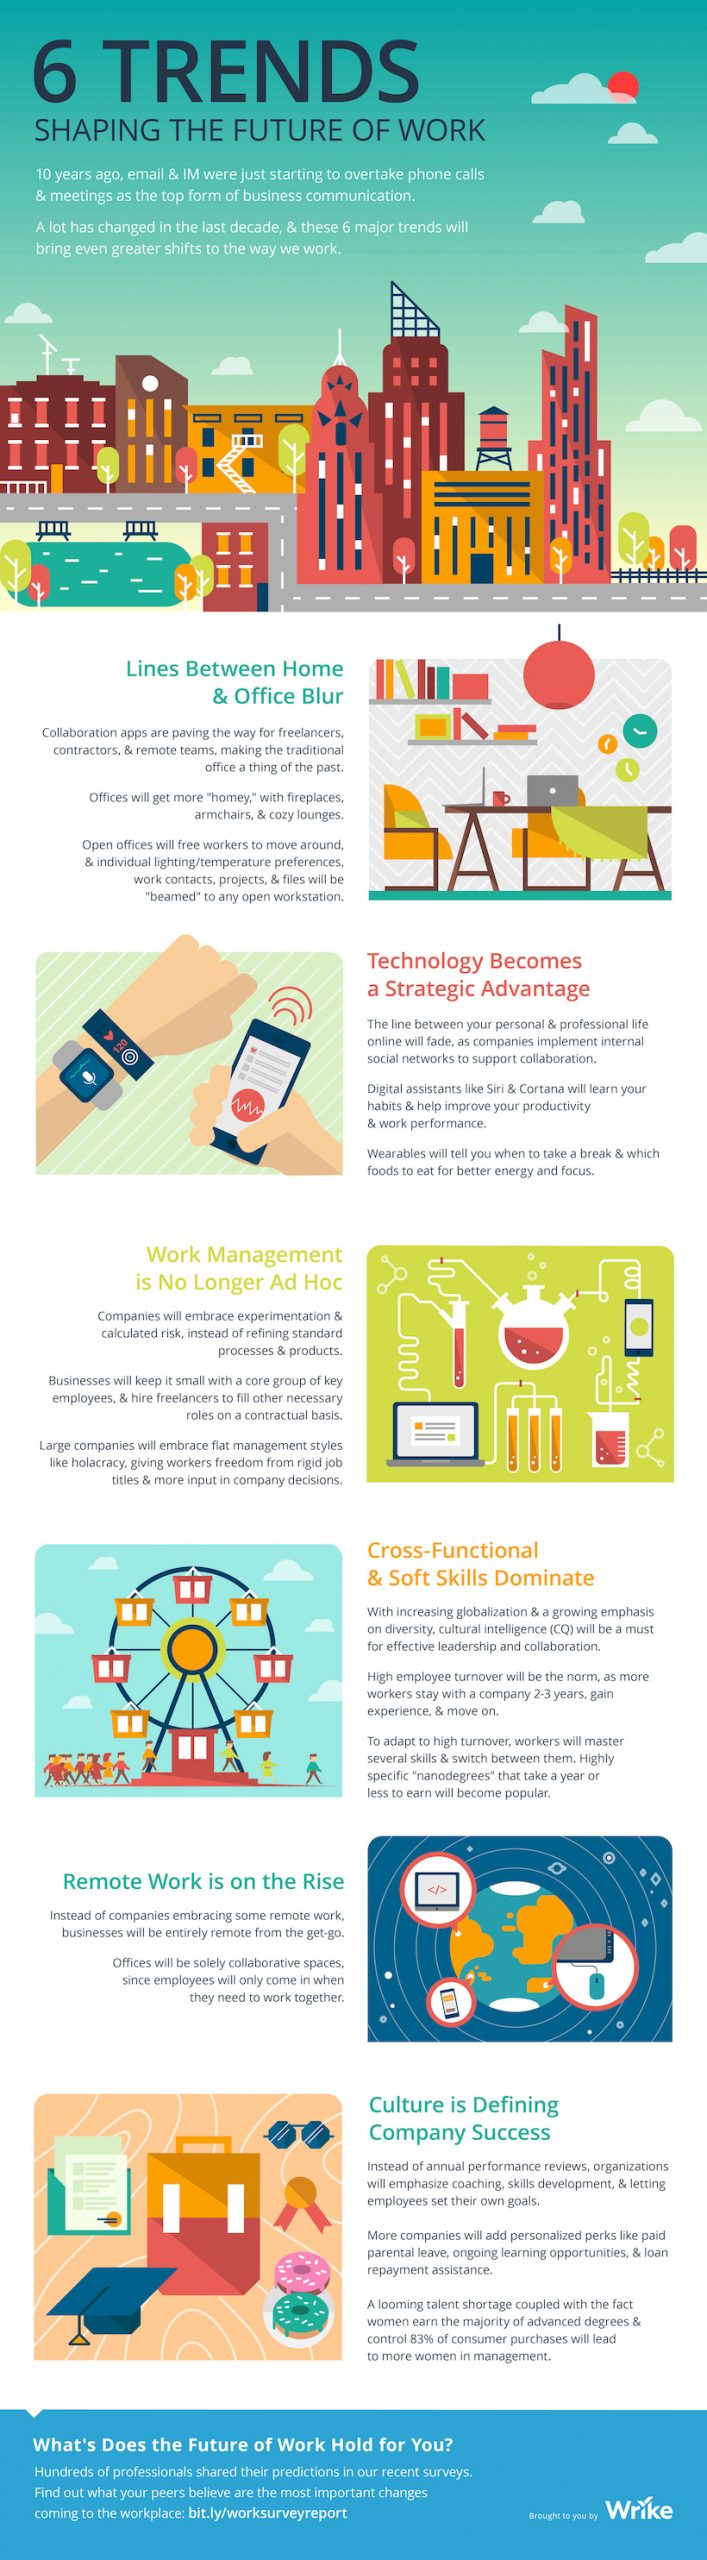 Trends Shaping the Future of Work Infographic Image